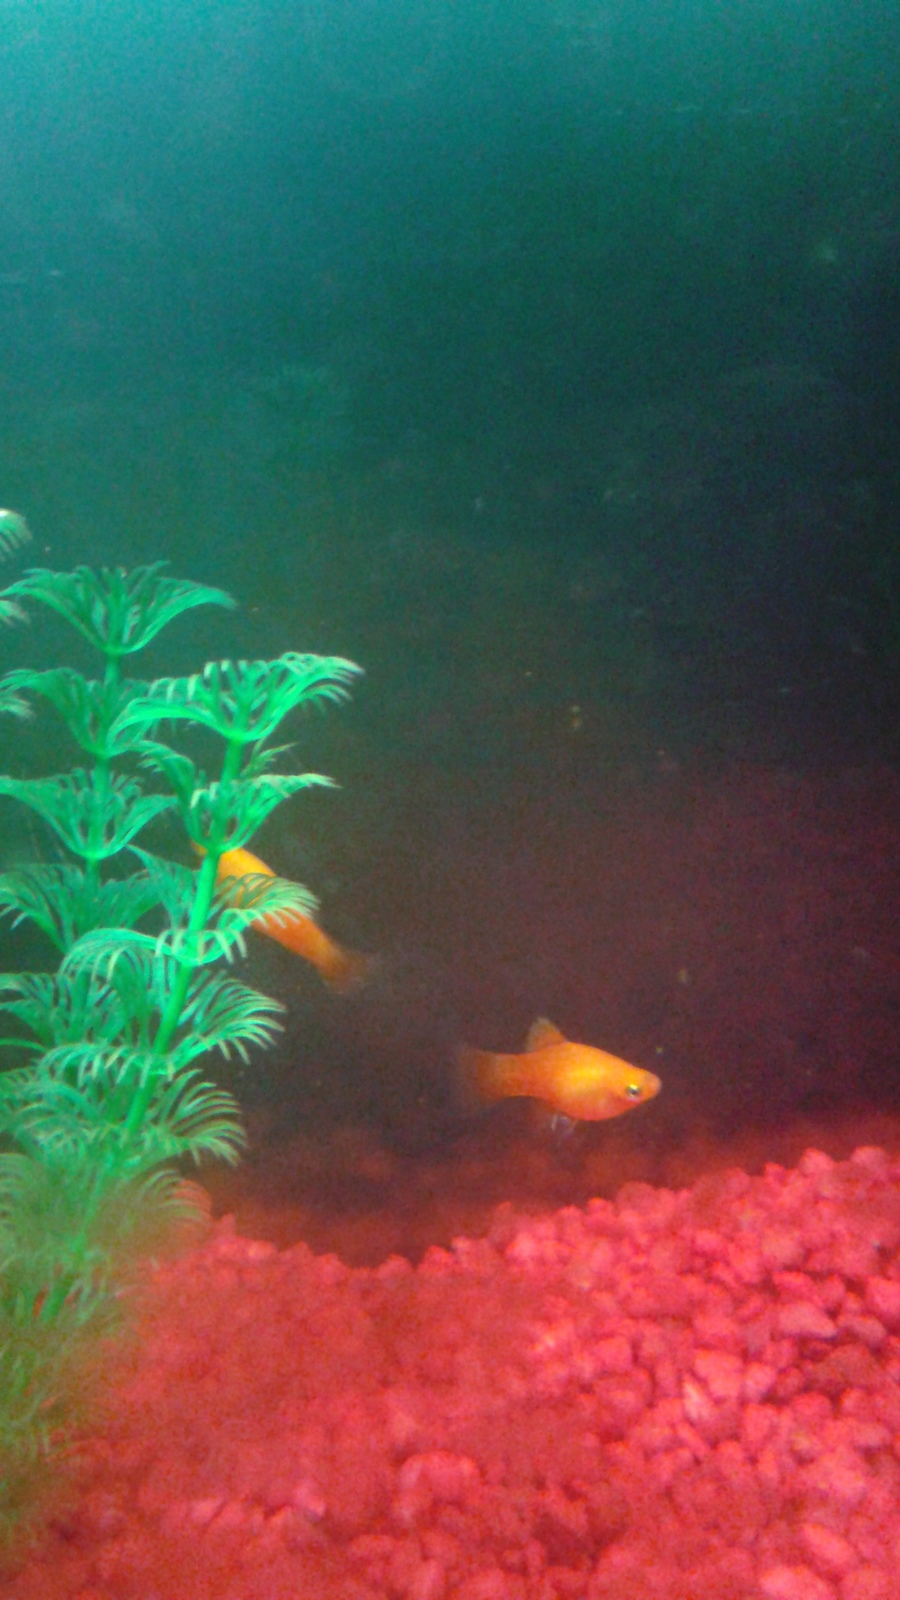 Freshwater fish growth rates - I Have Some Balloon Mollies I Had Them For About 4 6 Months But They Still Look Small Are They The Right Size